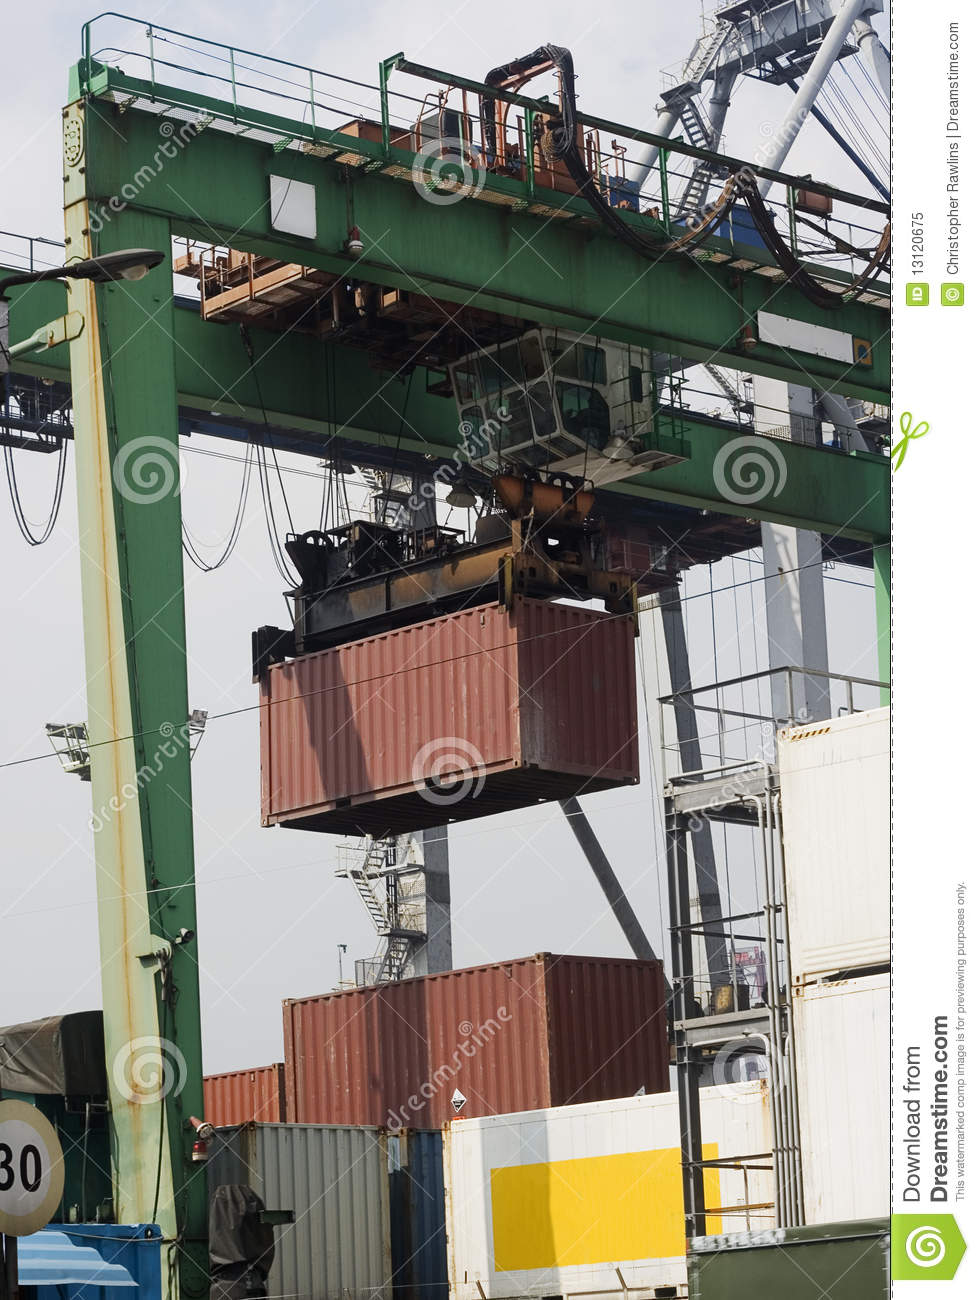 At the Port - moving cargo